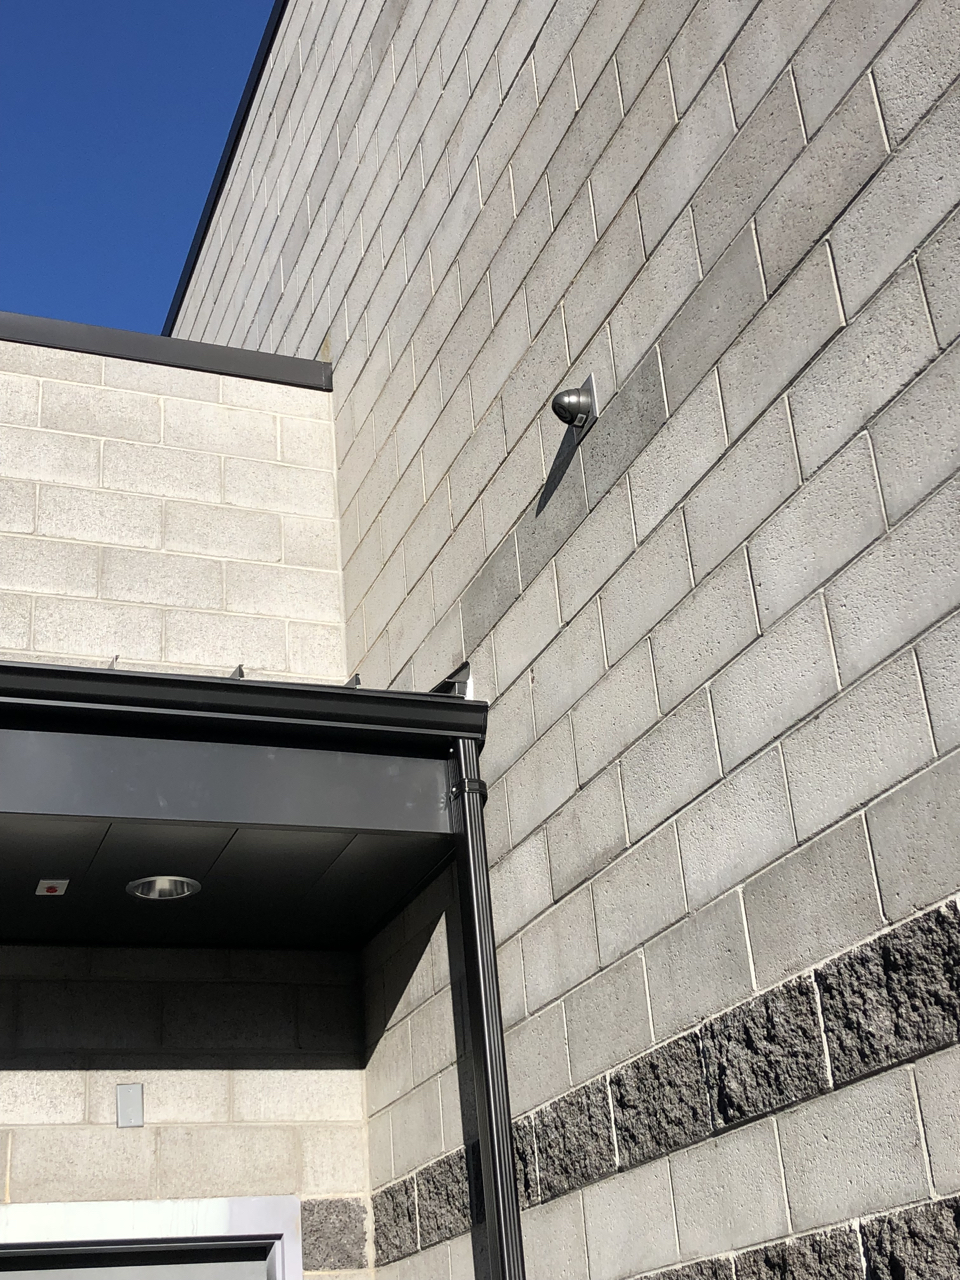 The security company began to install the exterior cameras.